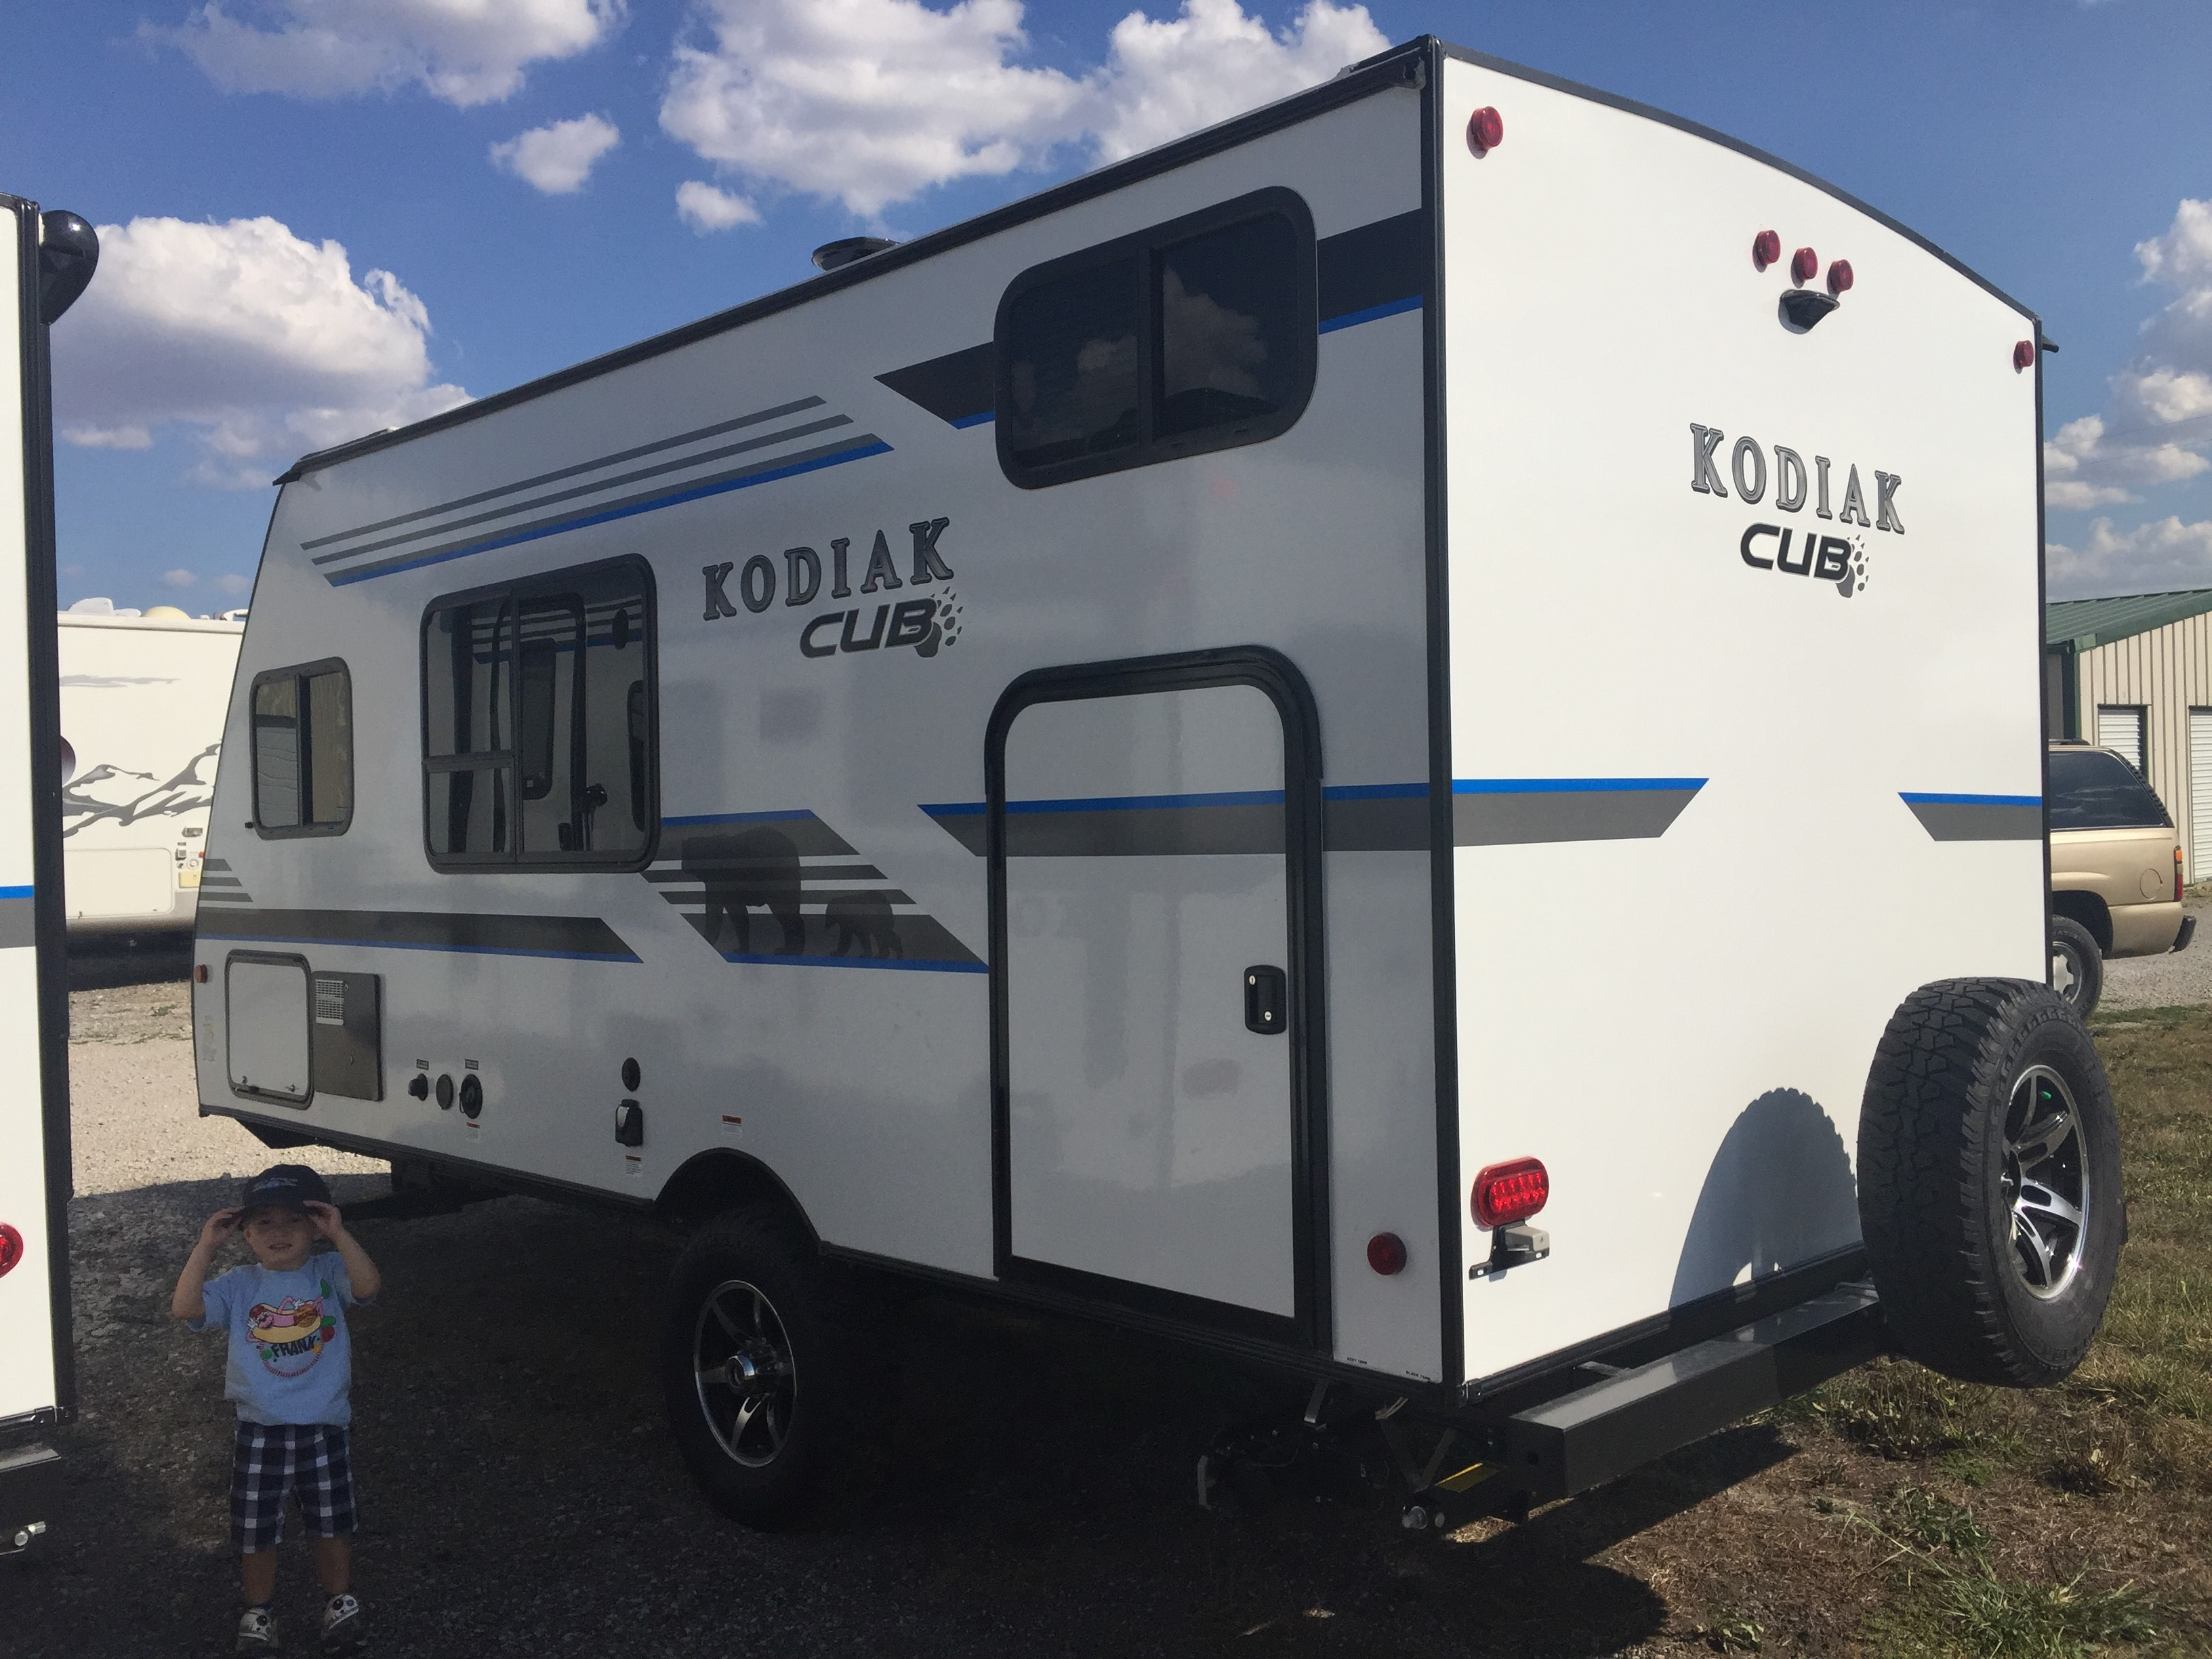 2018 Kodiak Travel Trailers Floor Plans Sunday Snapshot The Kodiak Cub 175bh The Small Trailer